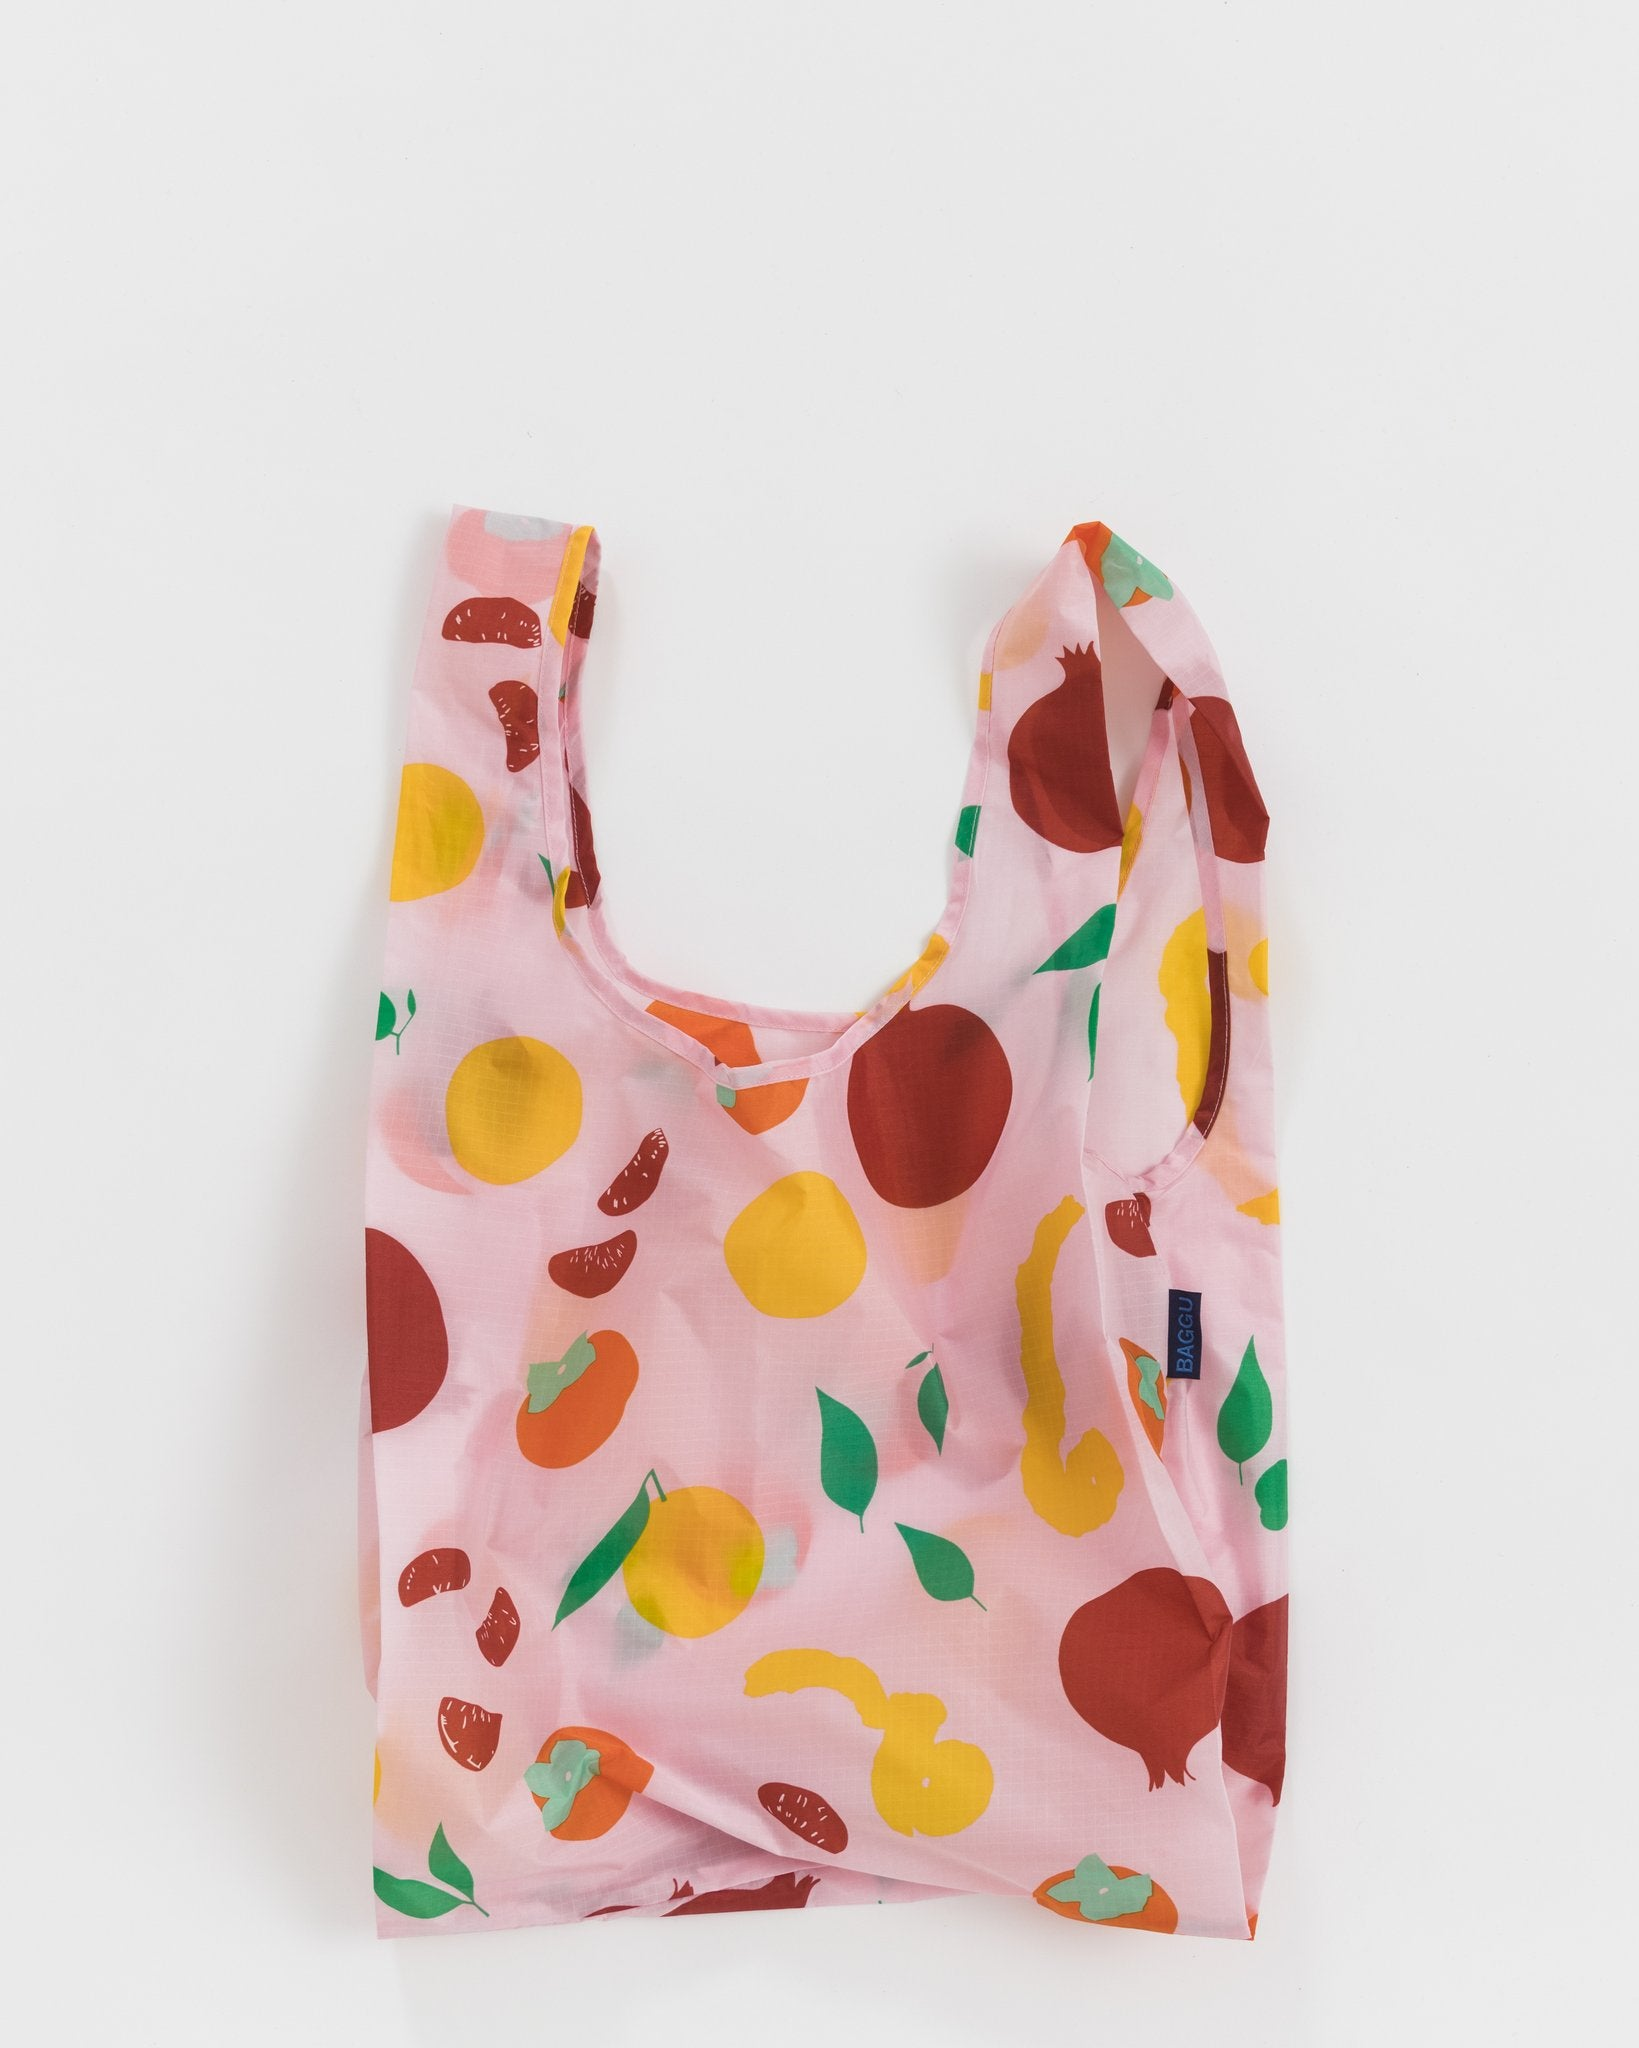 Baggu Reusable Tote in Autumn Fruit